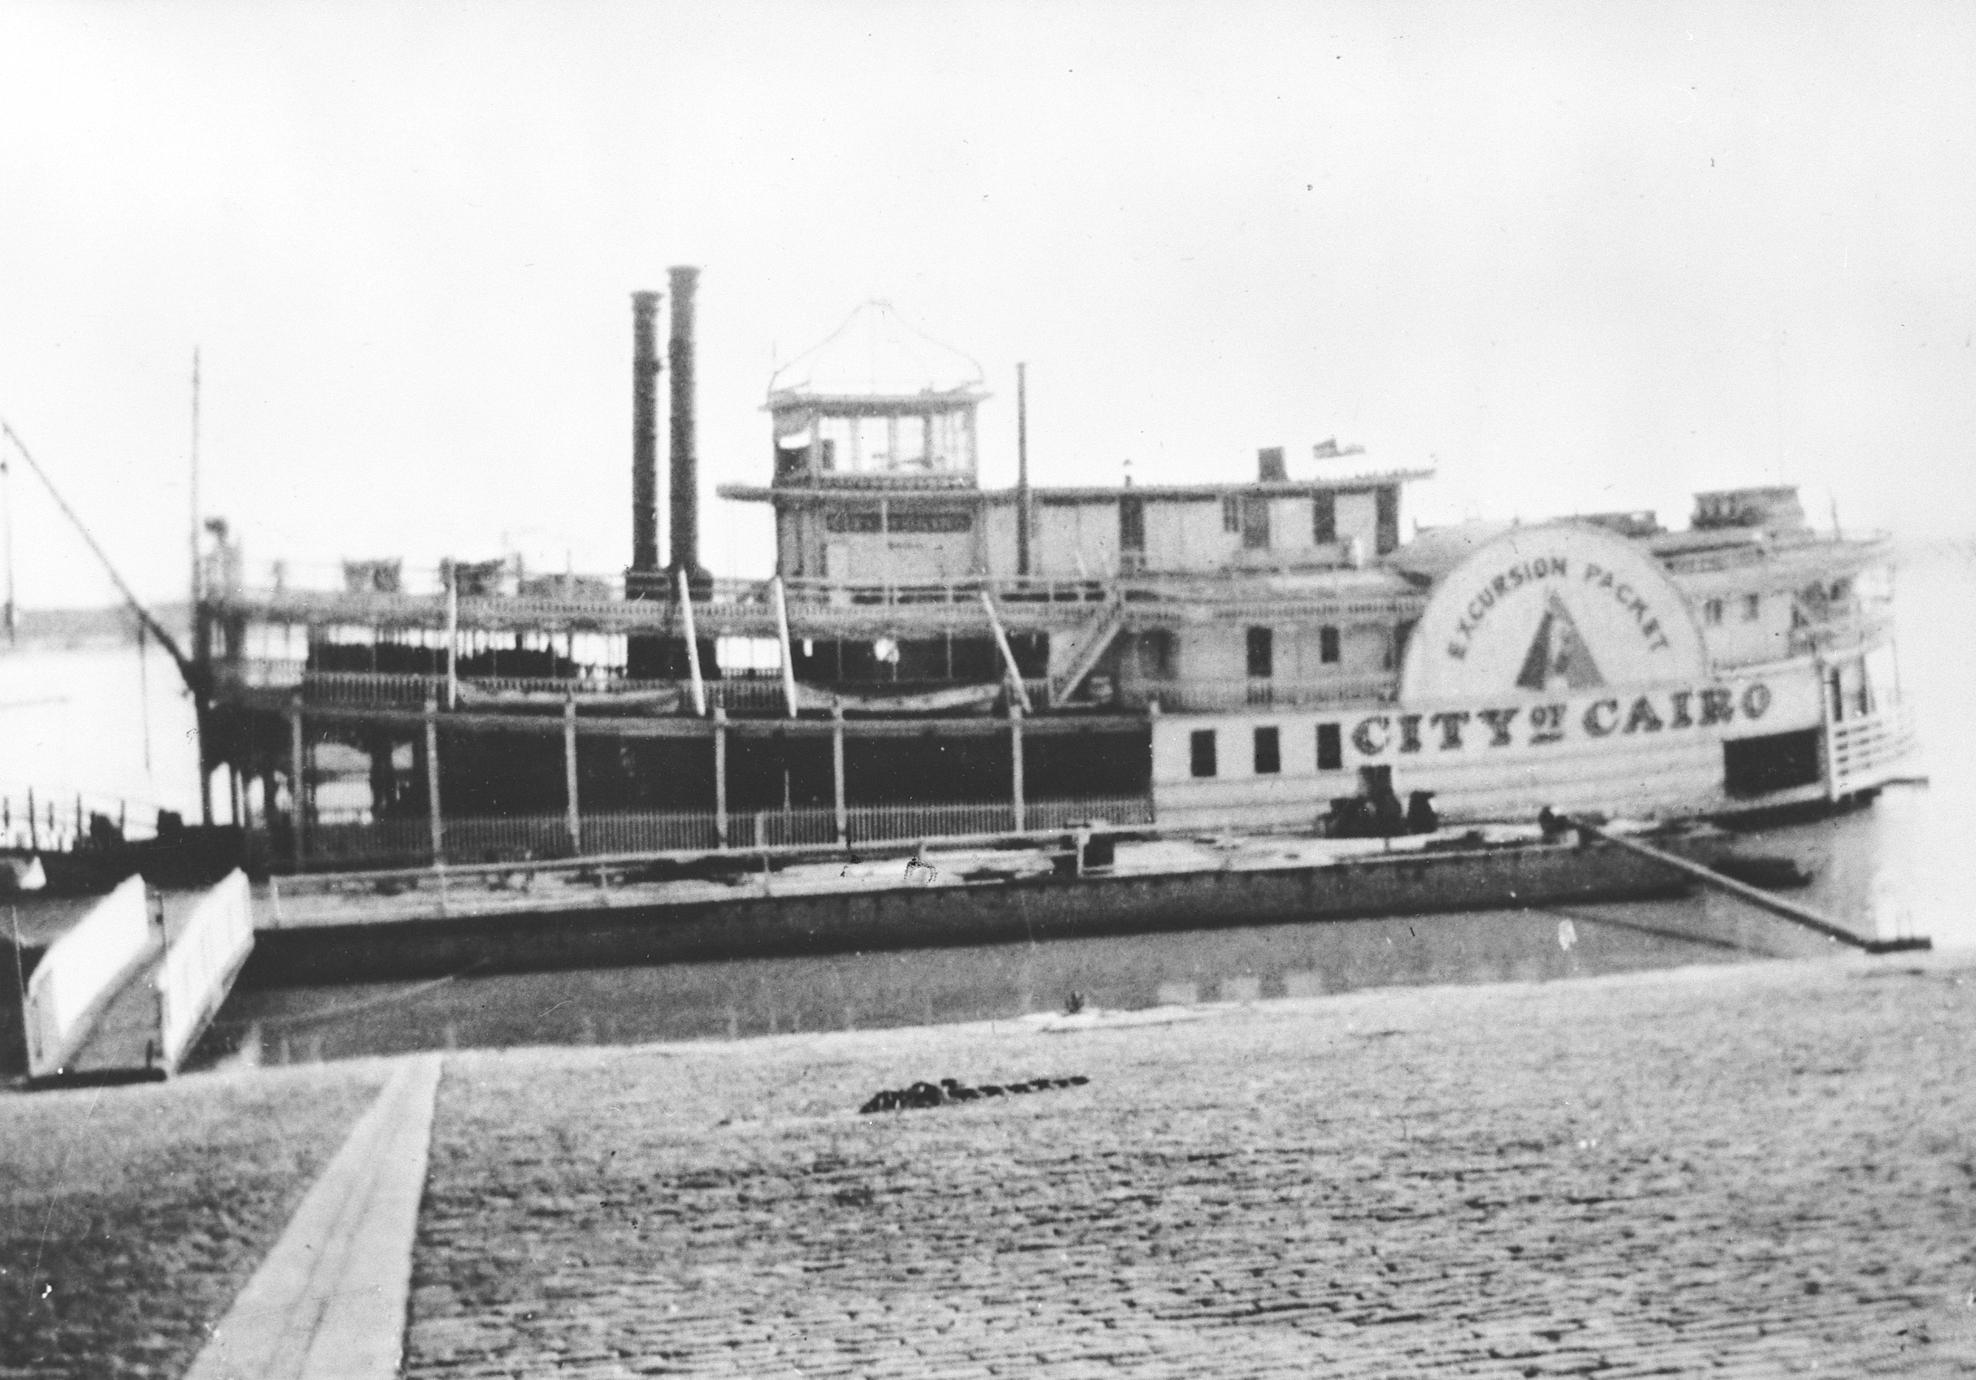 City of Cairo (Excursion boat, 1923-1924?)